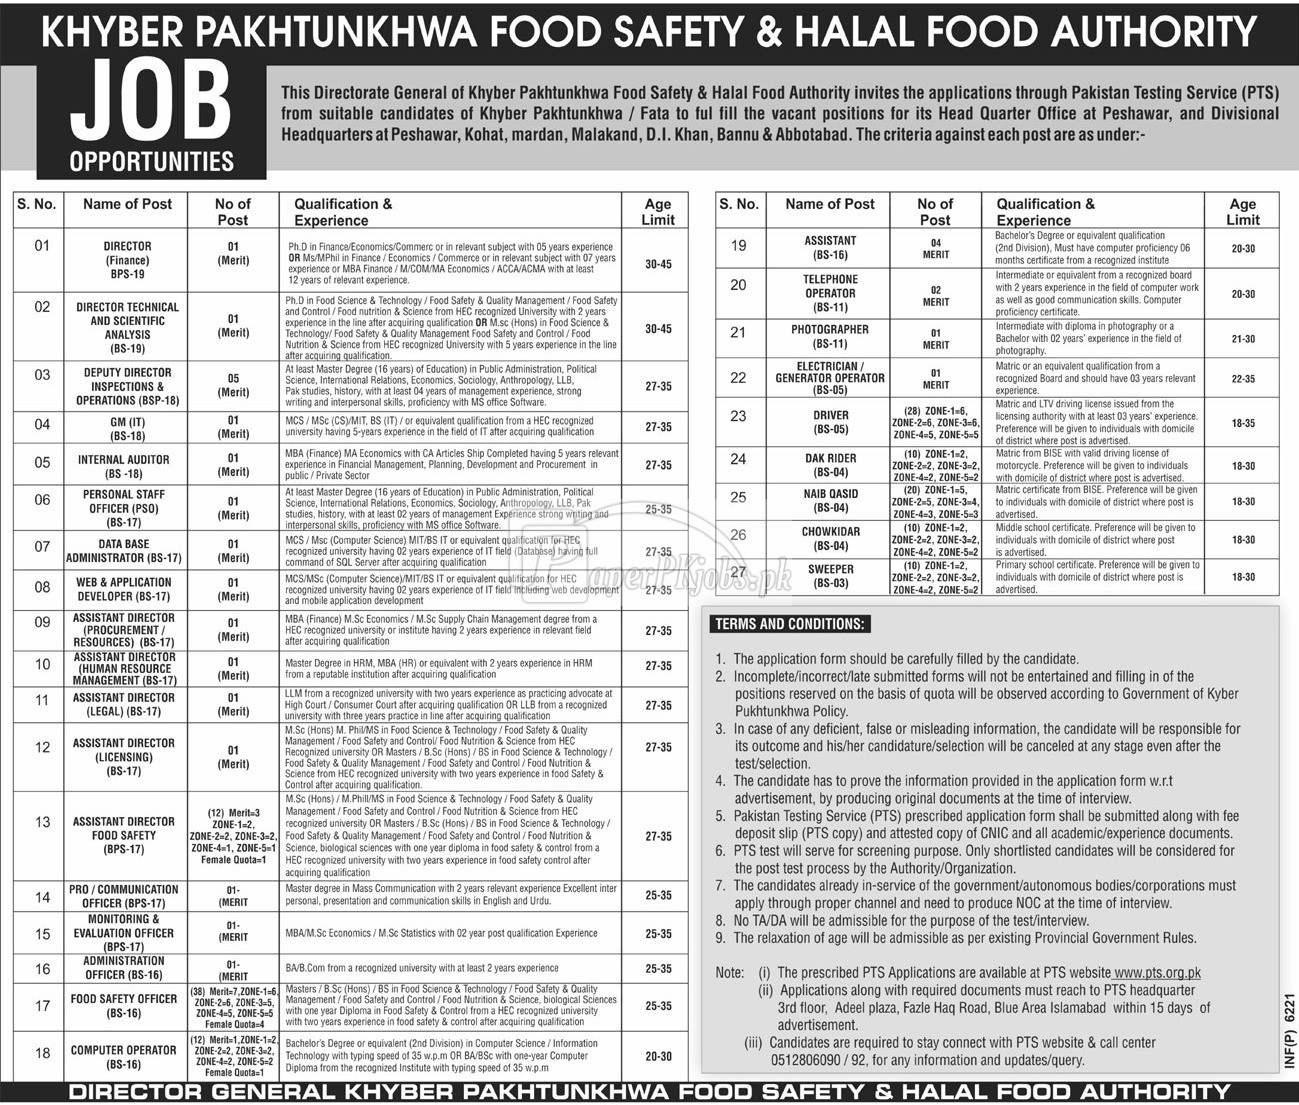 Khyber Pakhtunkhwa Food Safety & Halal Food Authority PTS Jobs 2017